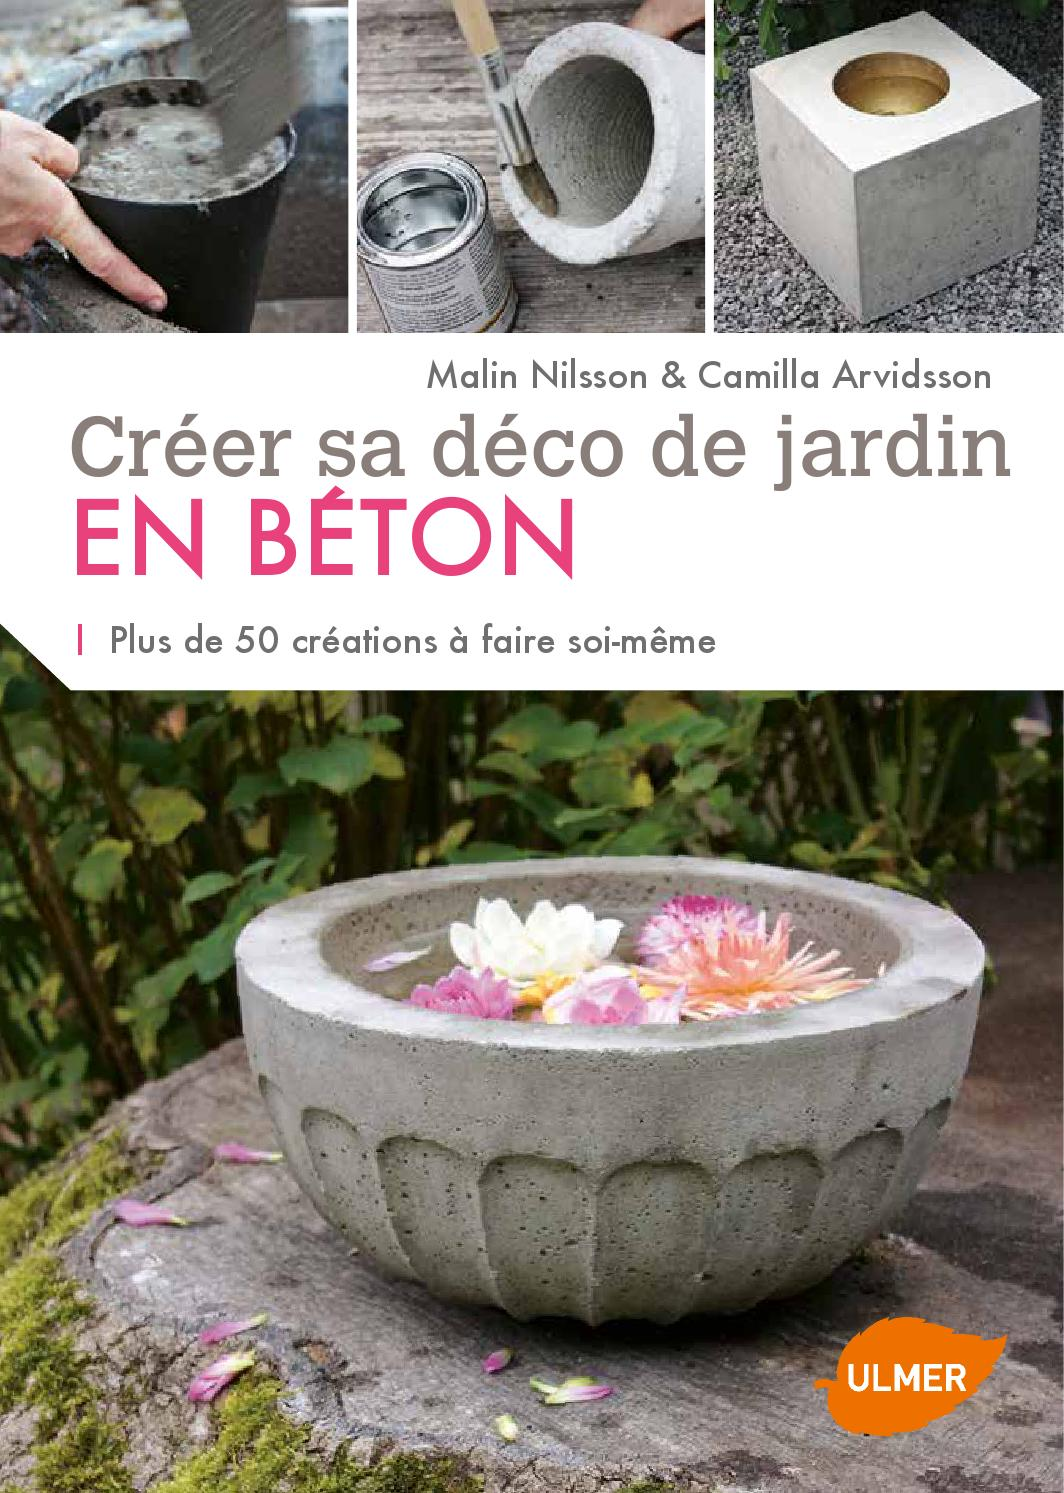 extrait cr er sa d co de jardin en b ton ditions ulmer by ditions ulmer issuu. Black Bedroom Furniture Sets. Home Design Ideas